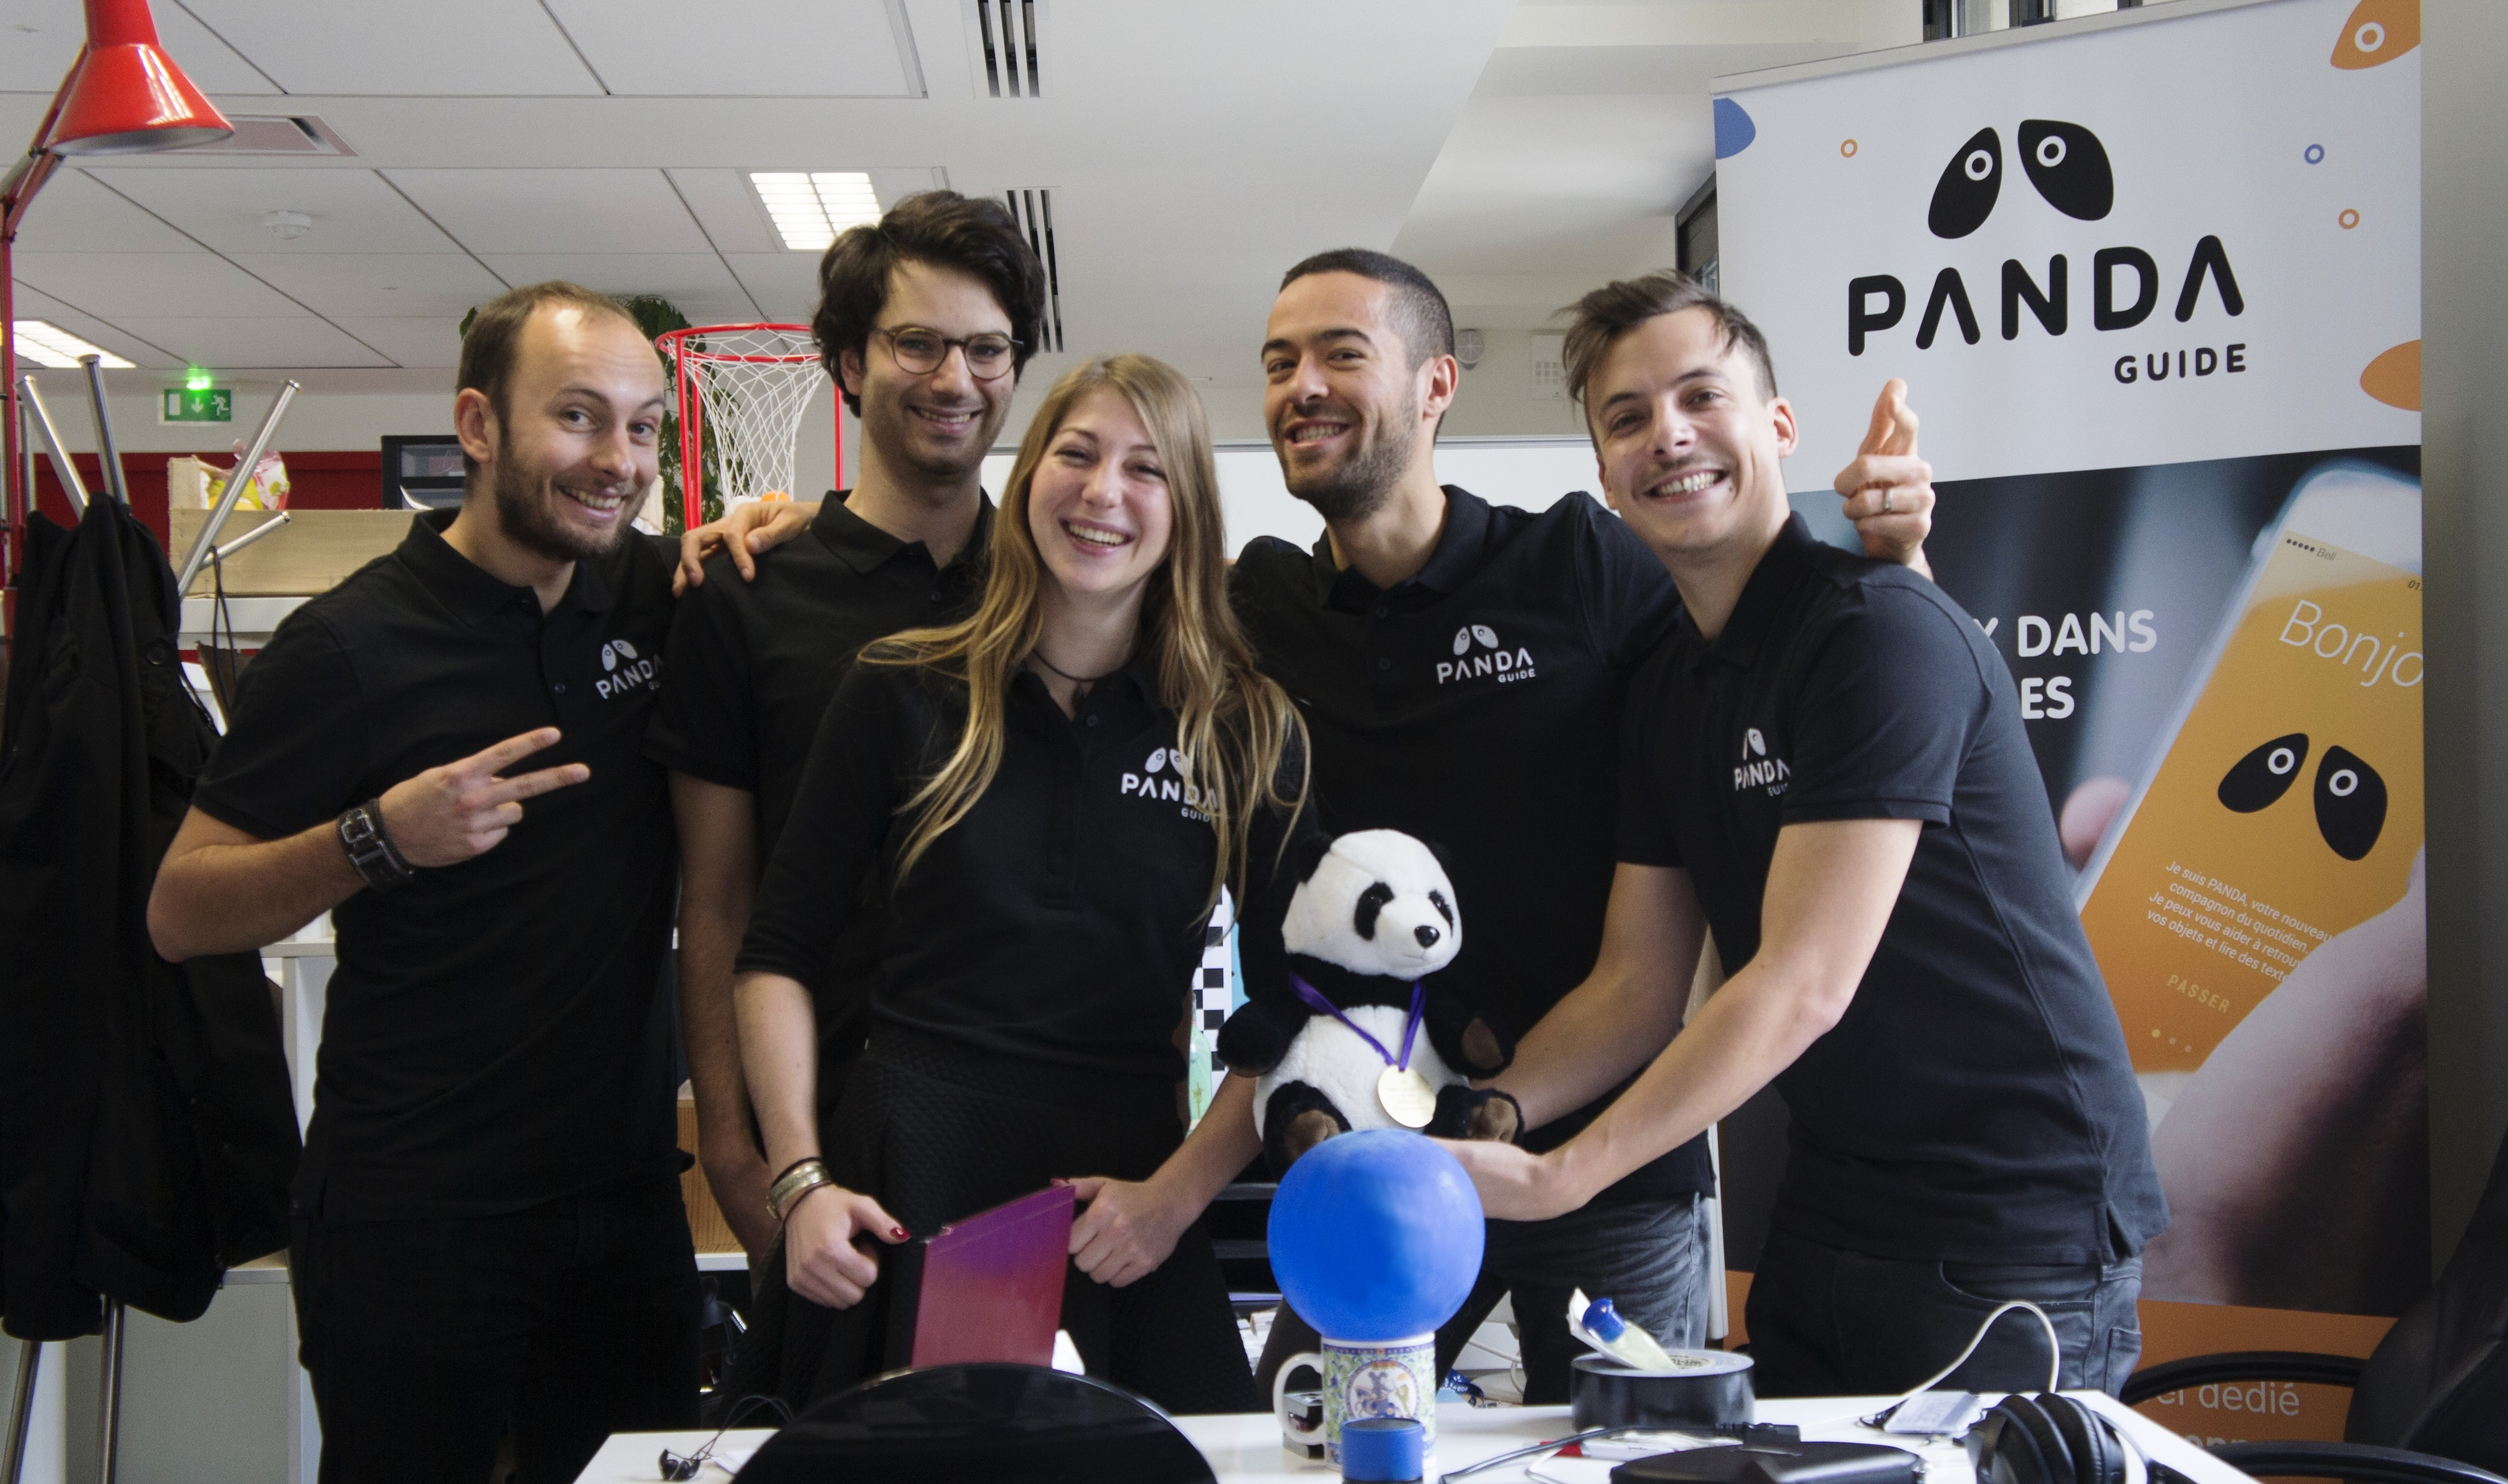 team panda for visually impaired people